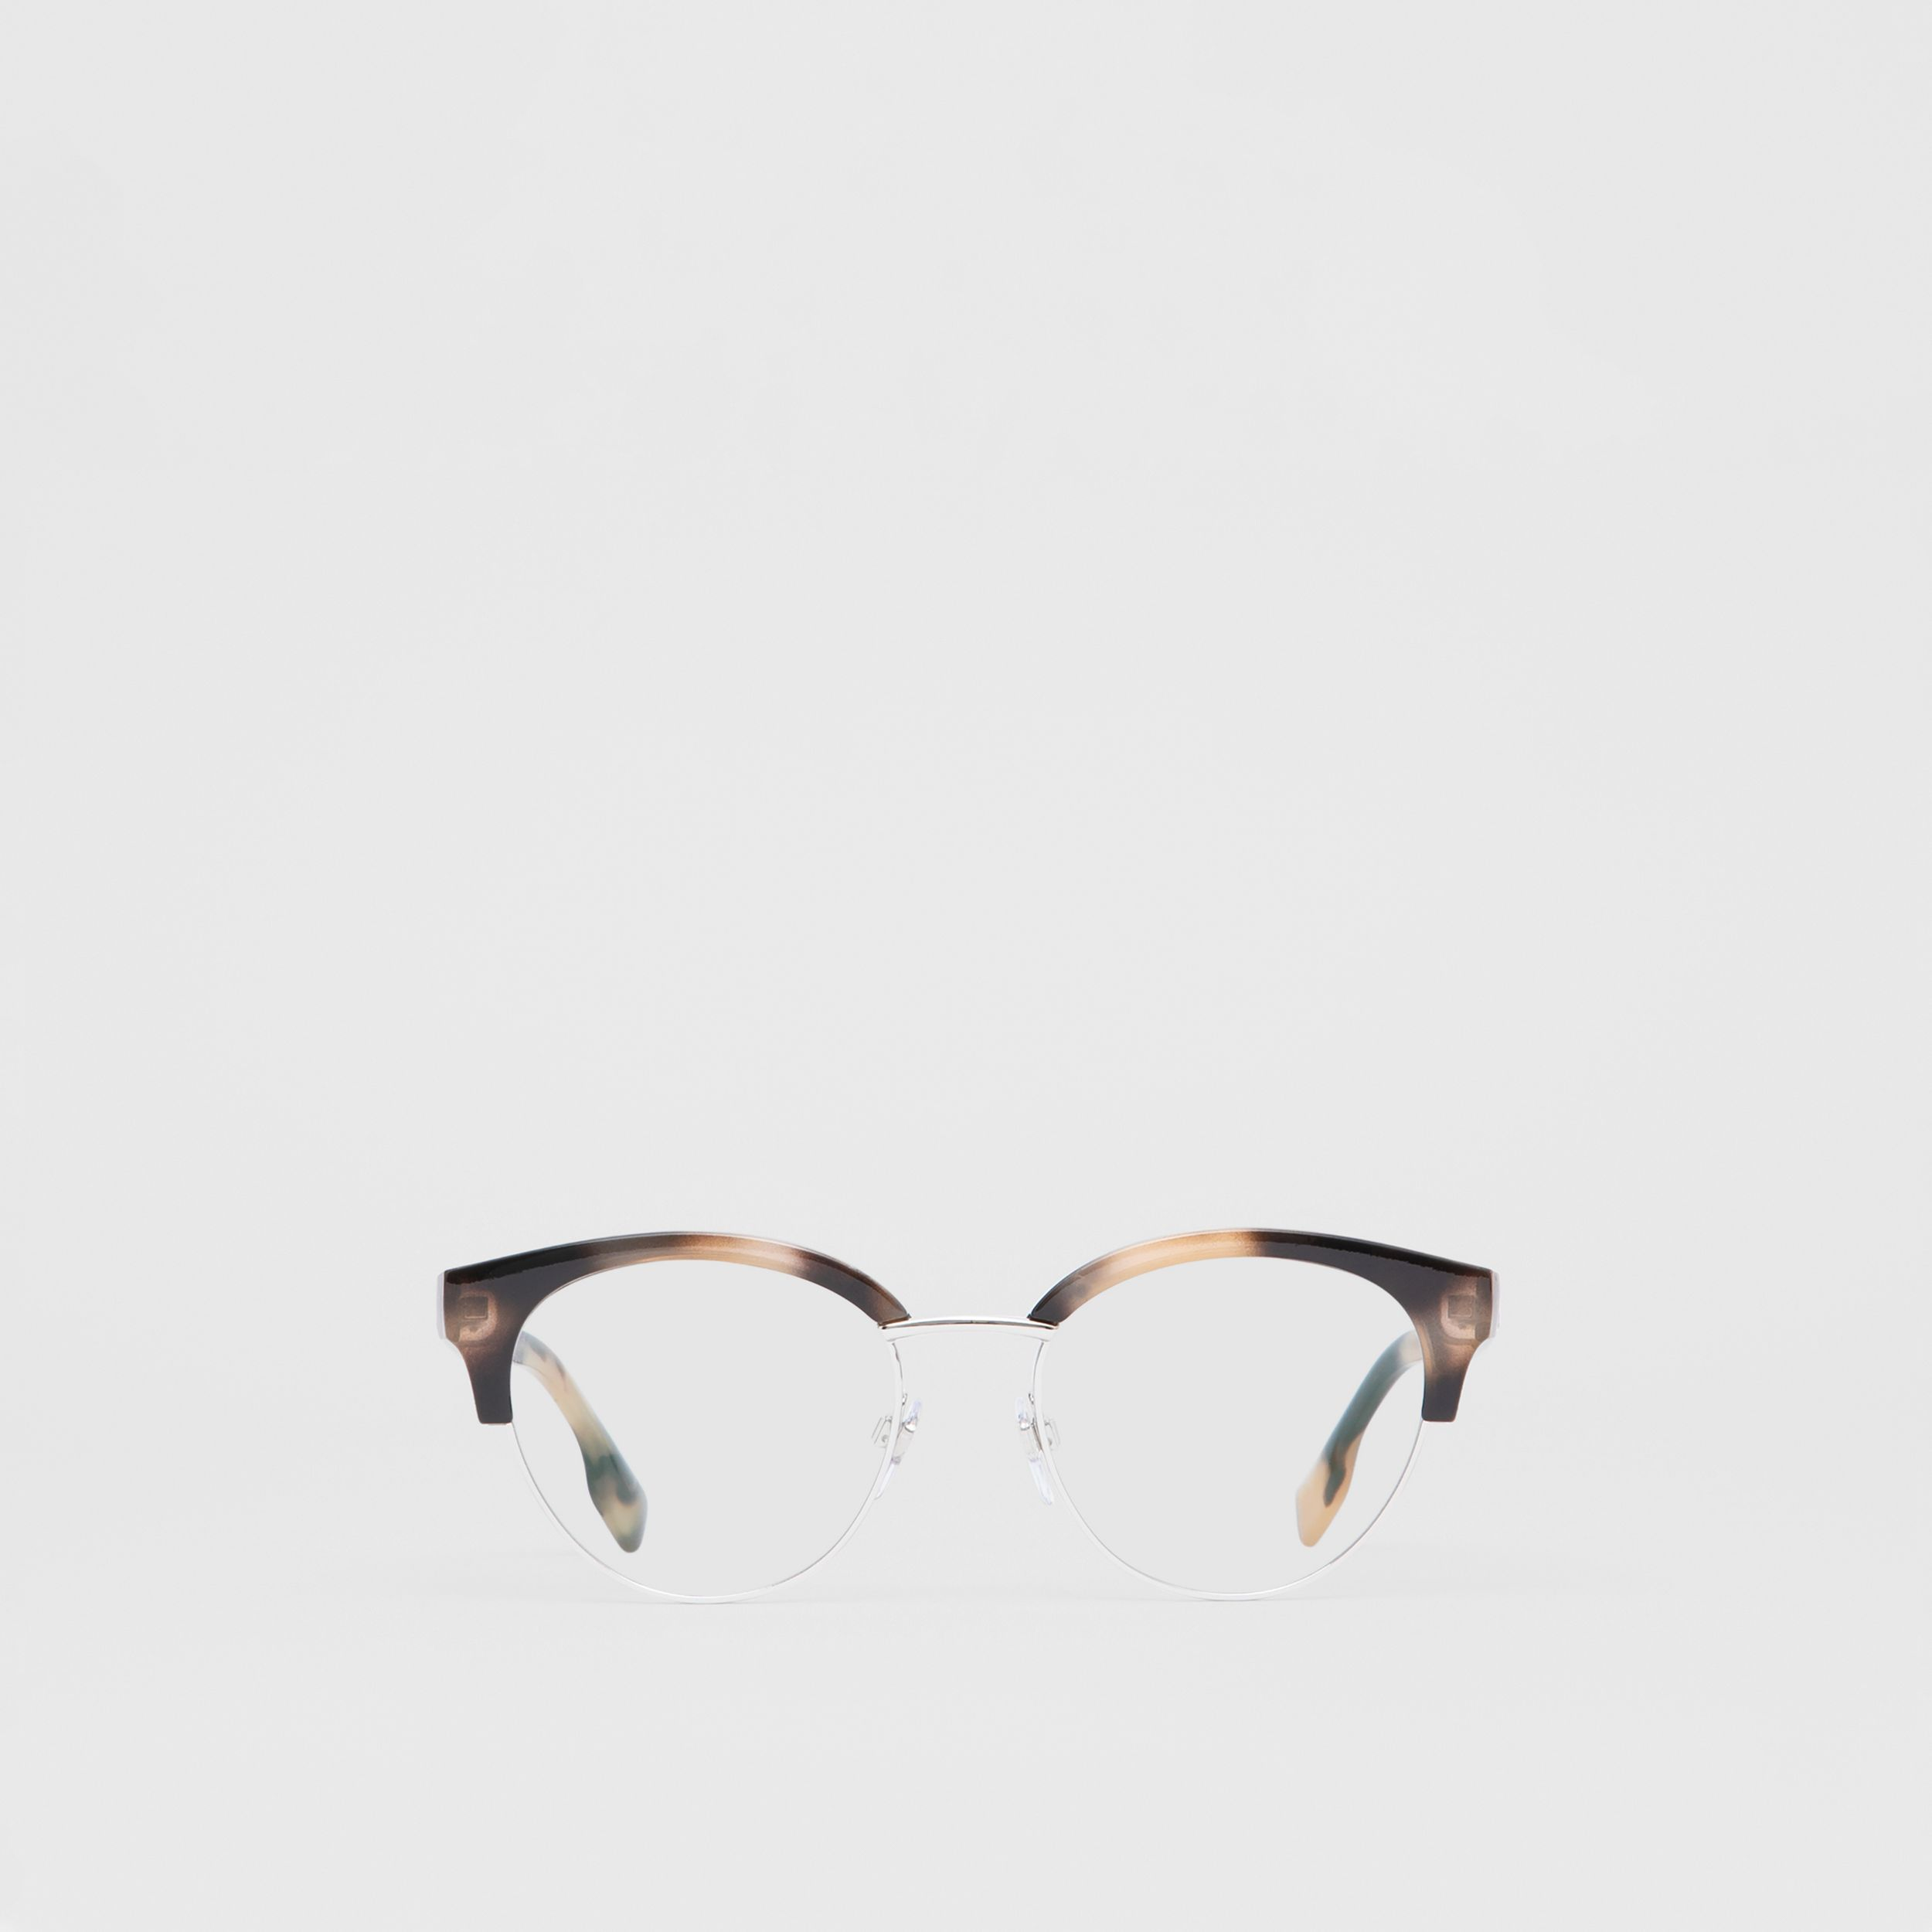 Cat-eye Optical Frames in Bright Tortoiseshell - Women | Burberry - 1